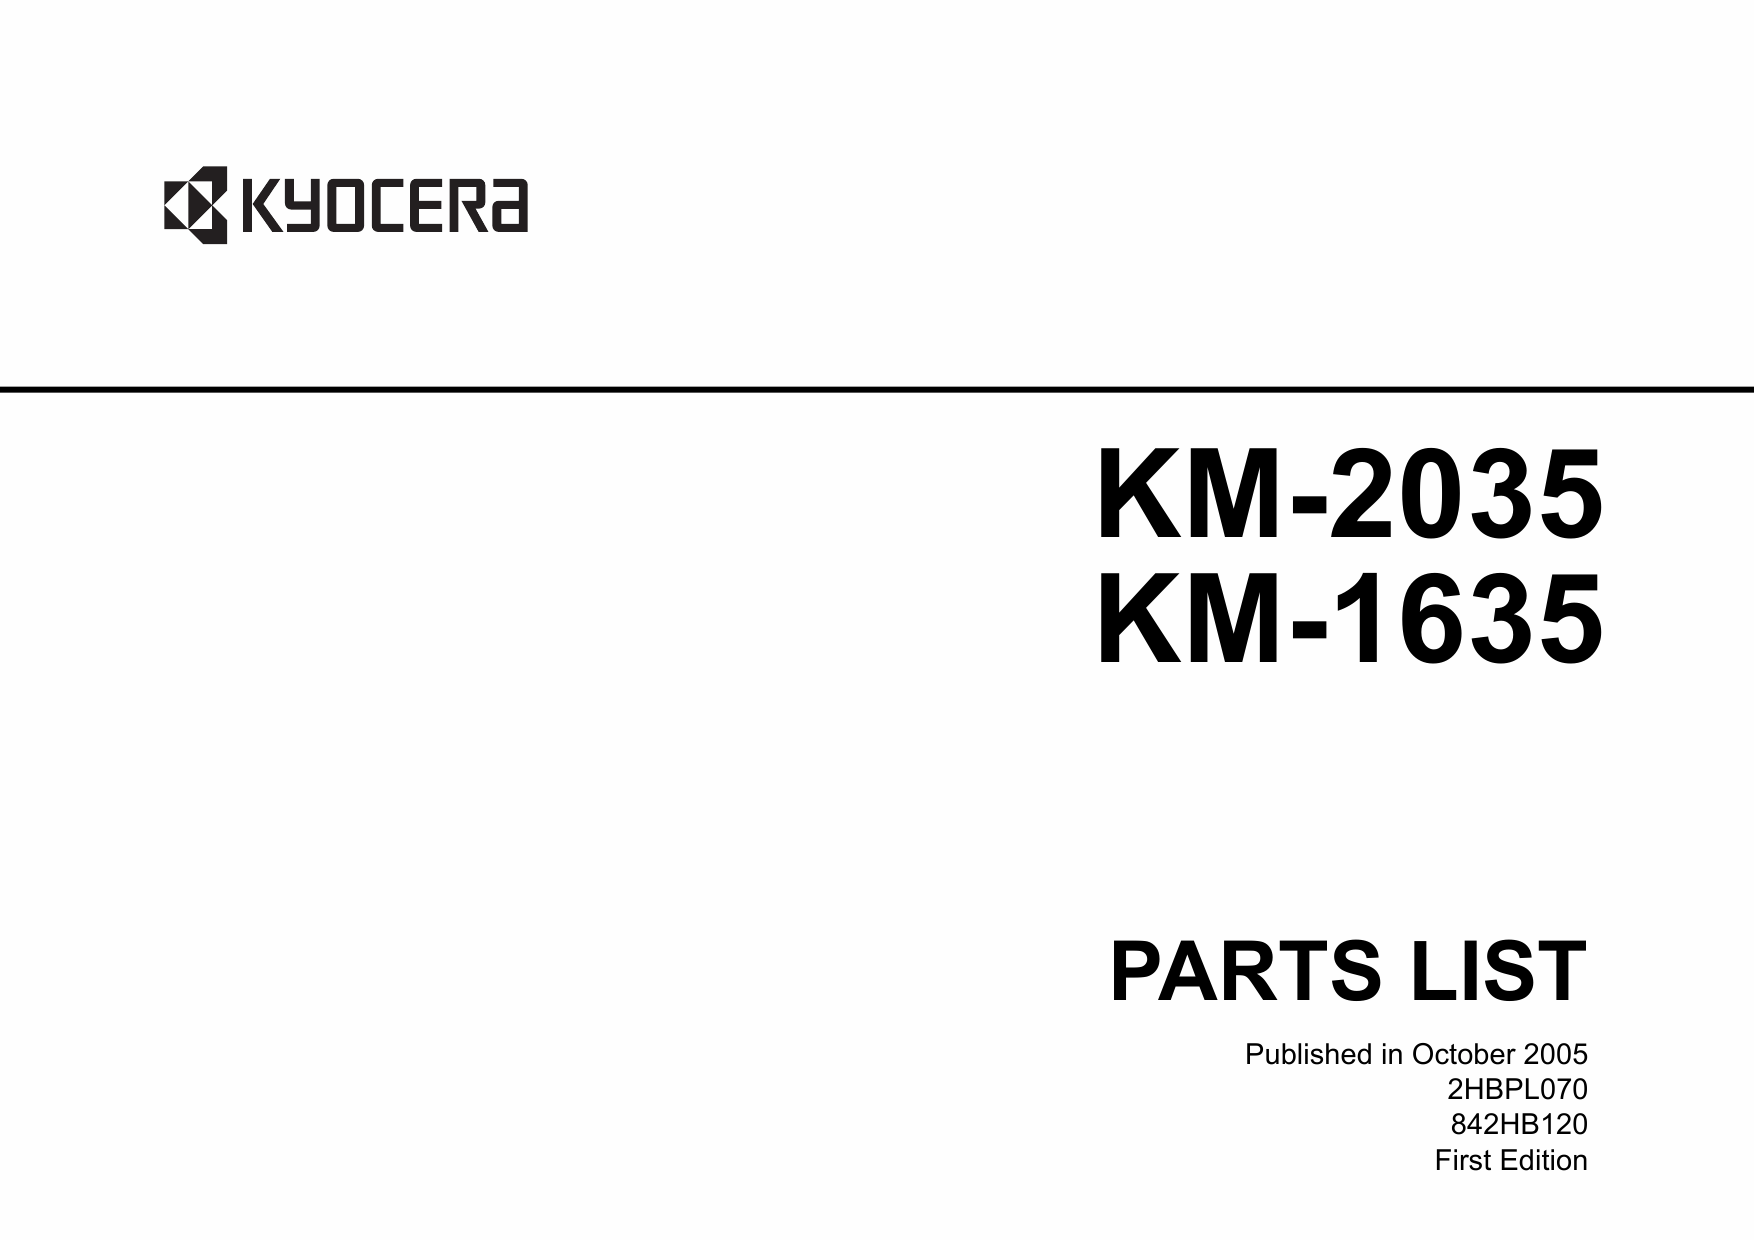 KYOCERA Copier KM-1635 2035 Parts Manual-1